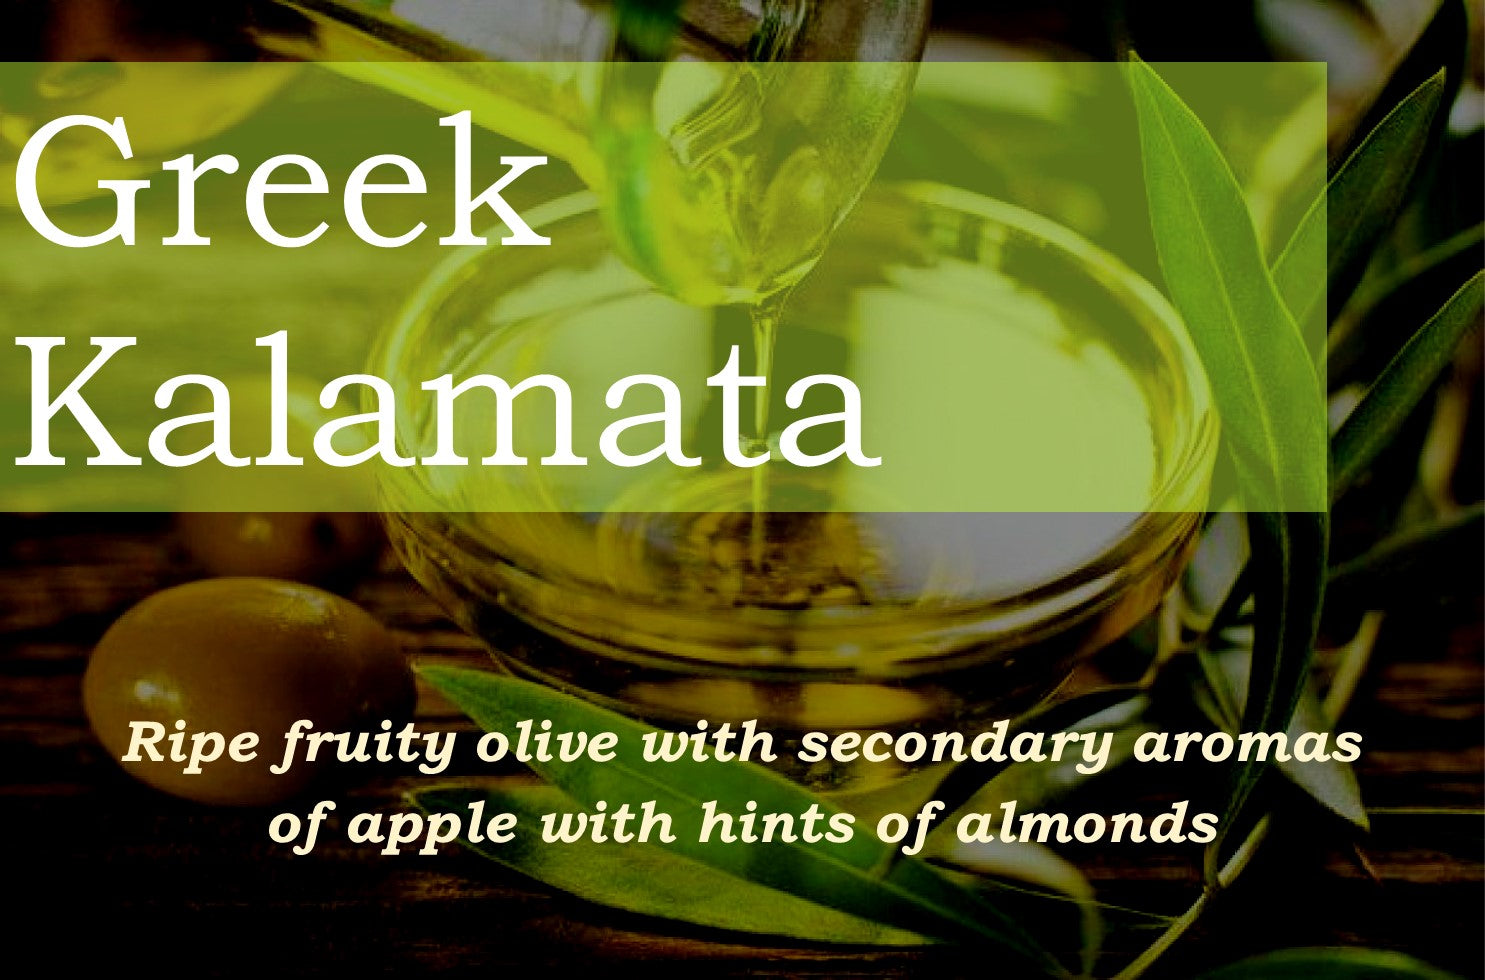 Greek Kalamata Extra Virgin Olive Oil